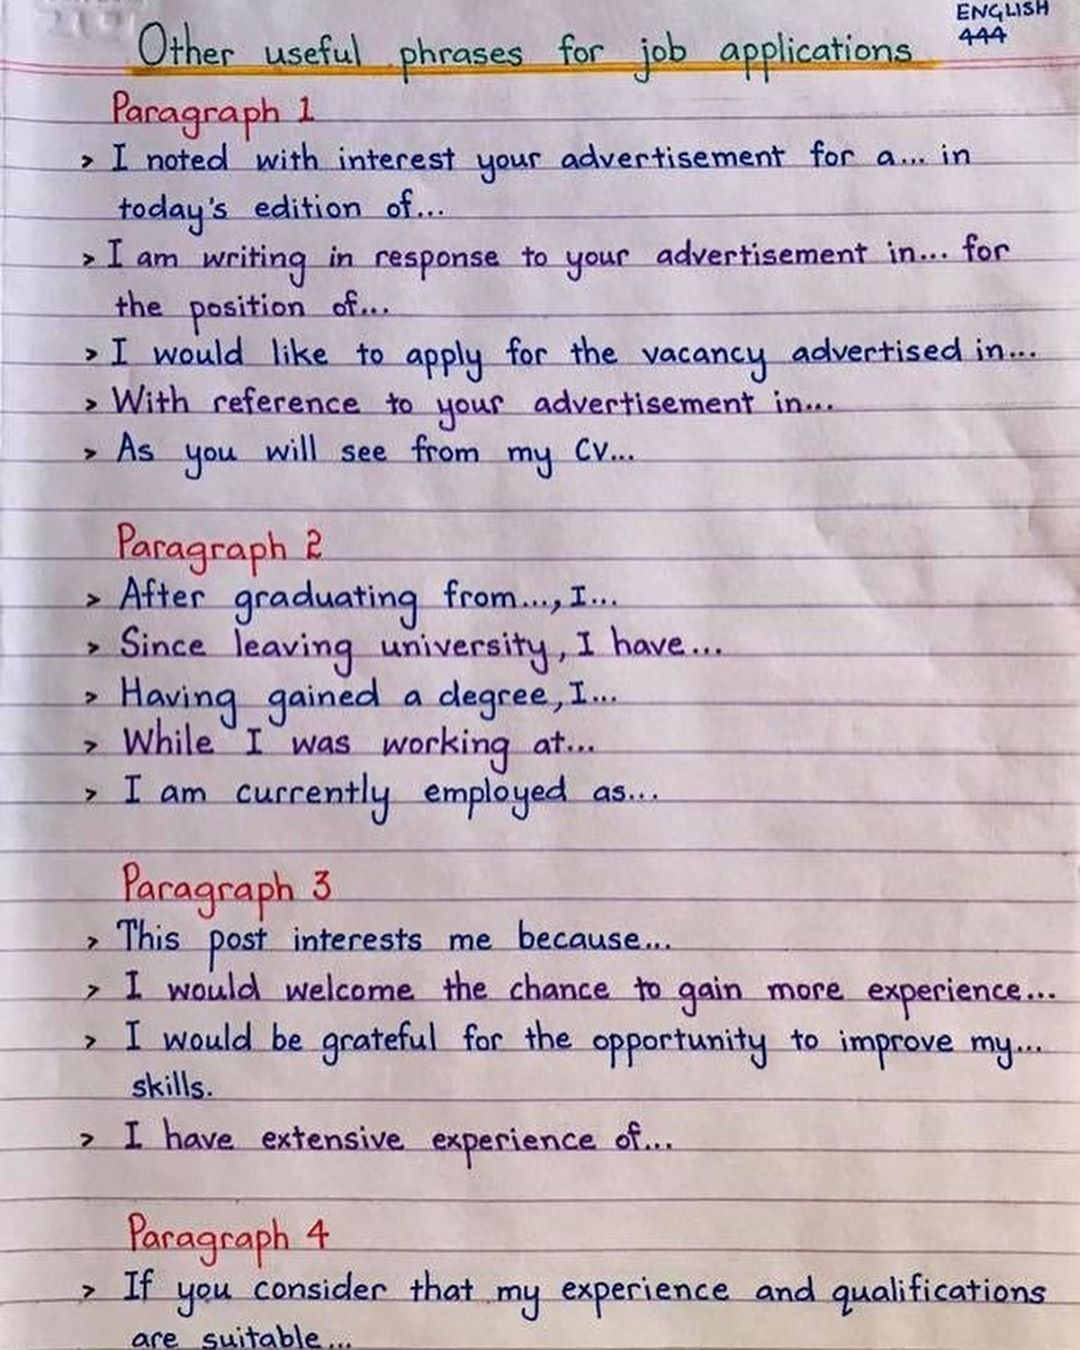 Edu Post On Twitter Writing Response English Writing Skills Writing A Cover Letter